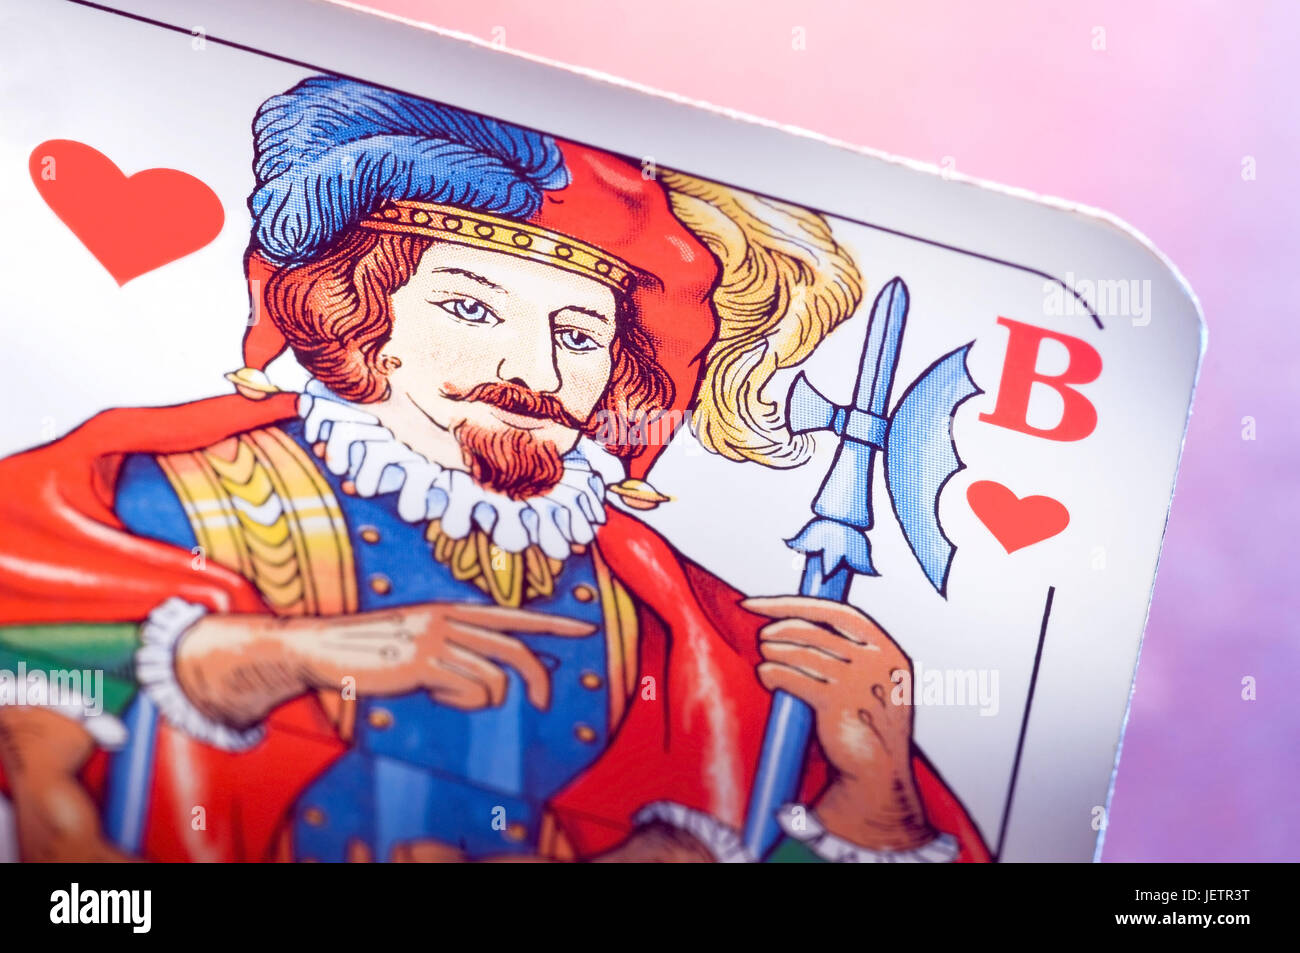 Playing card heart jack, Spielkarte Herzbube - Stock Image